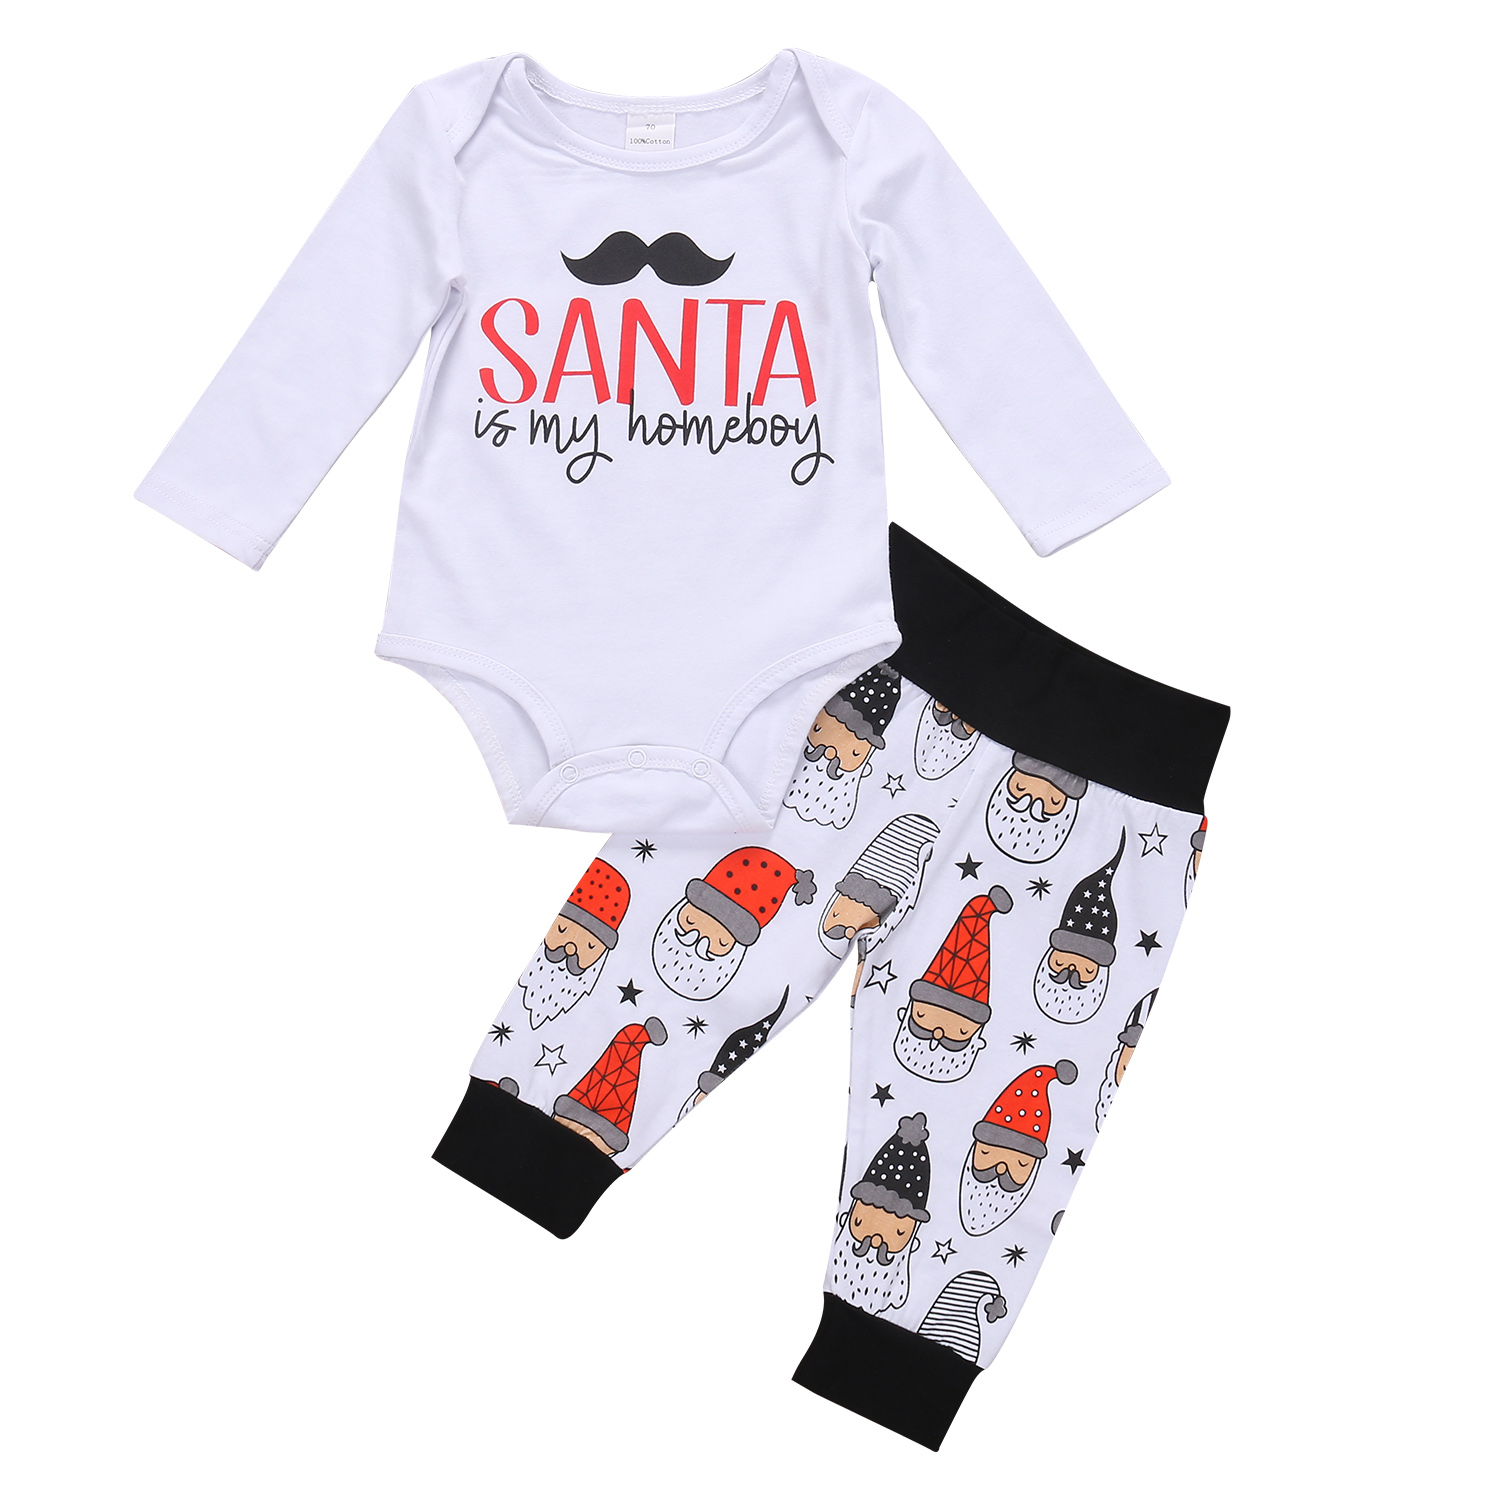 Pudcoco 2Pcs Newborn Baby Boys Clothes Casual Cotton Long Sleeve O-Neck Pants Outfits Set 0-18 Months Helen115